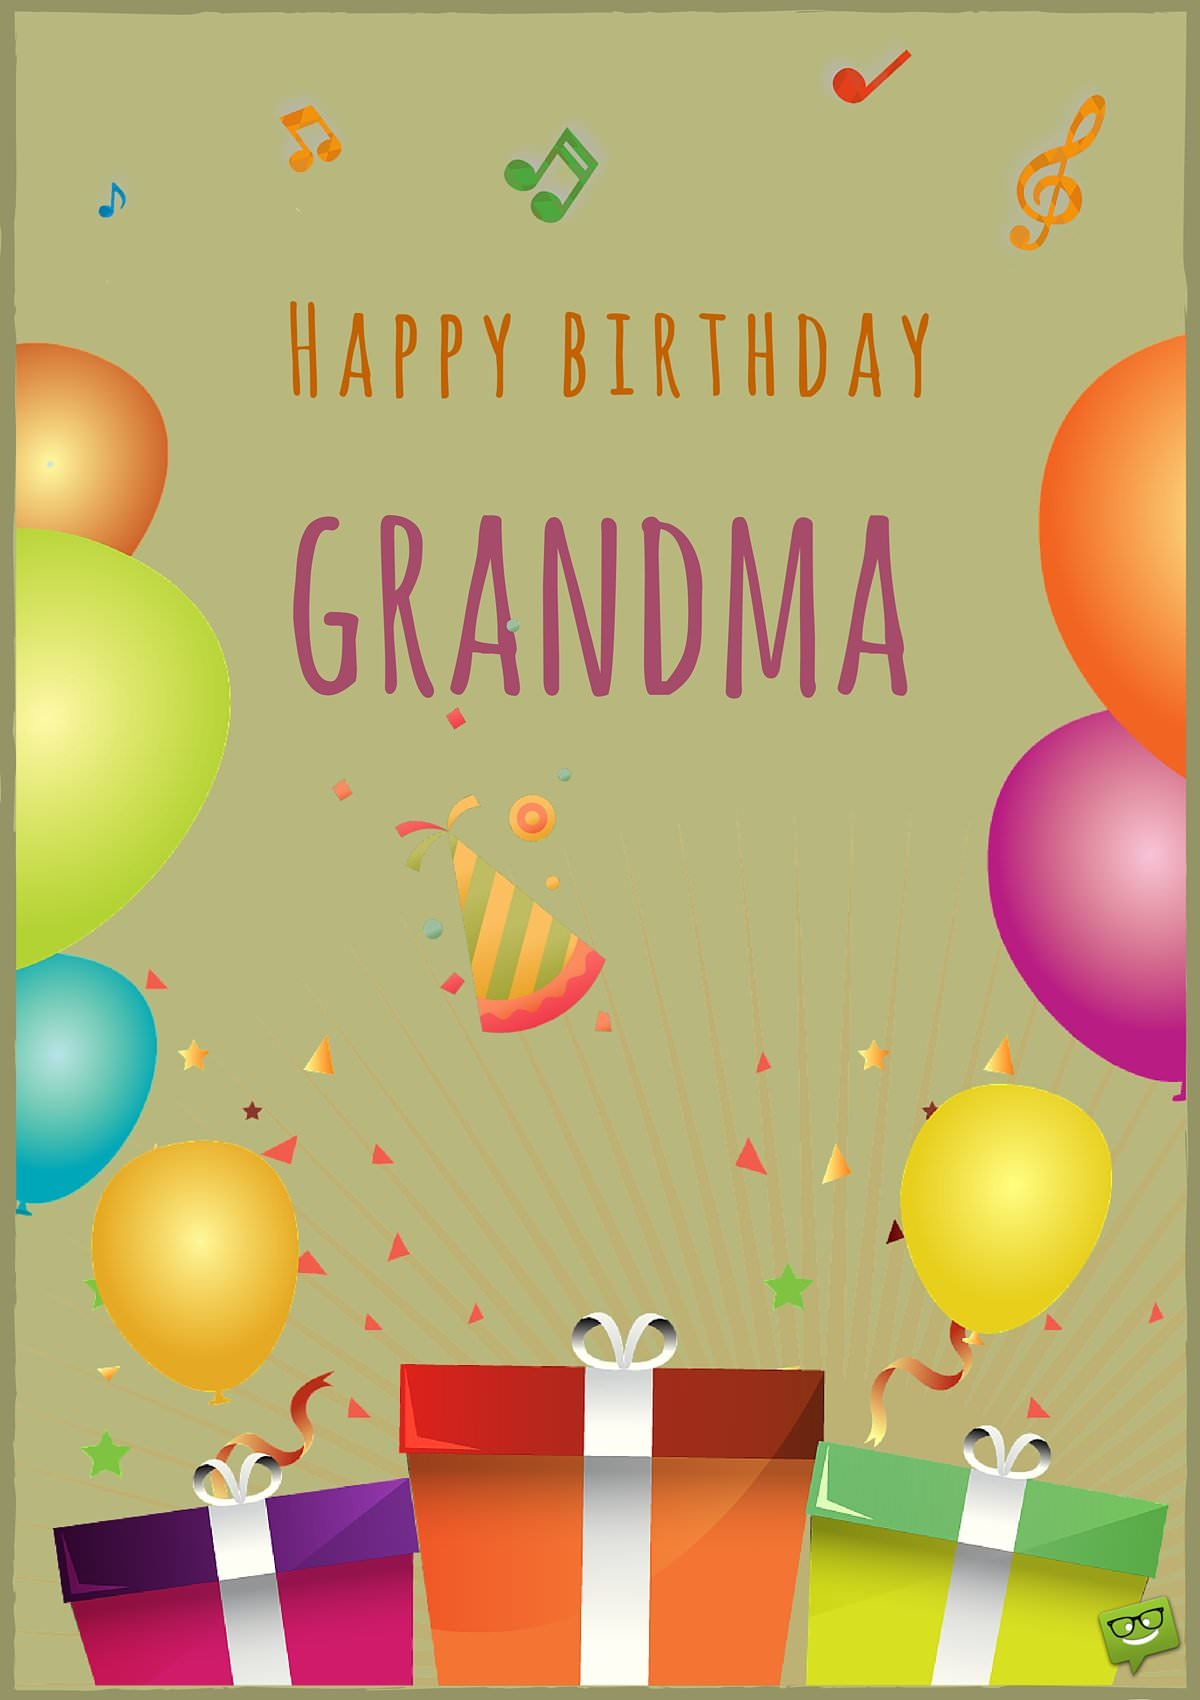 Happy Birthday Card For Grandma With Image Of Balloons And Gifts